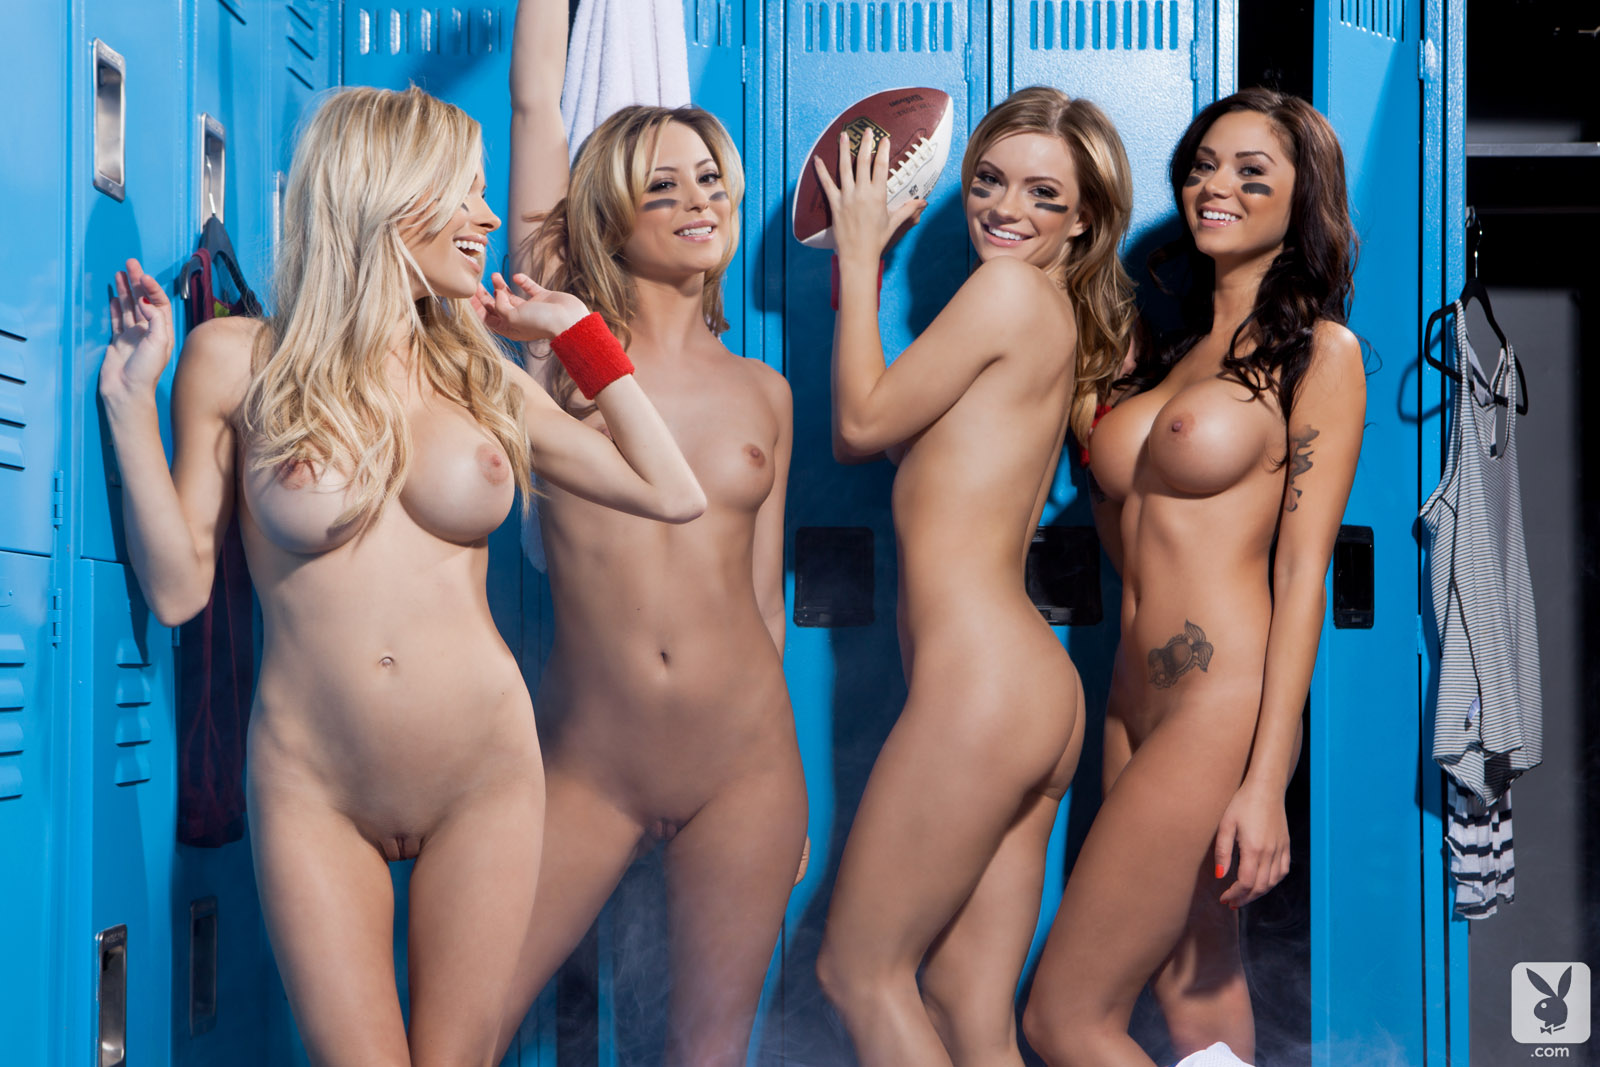 Naked hot locker room girls